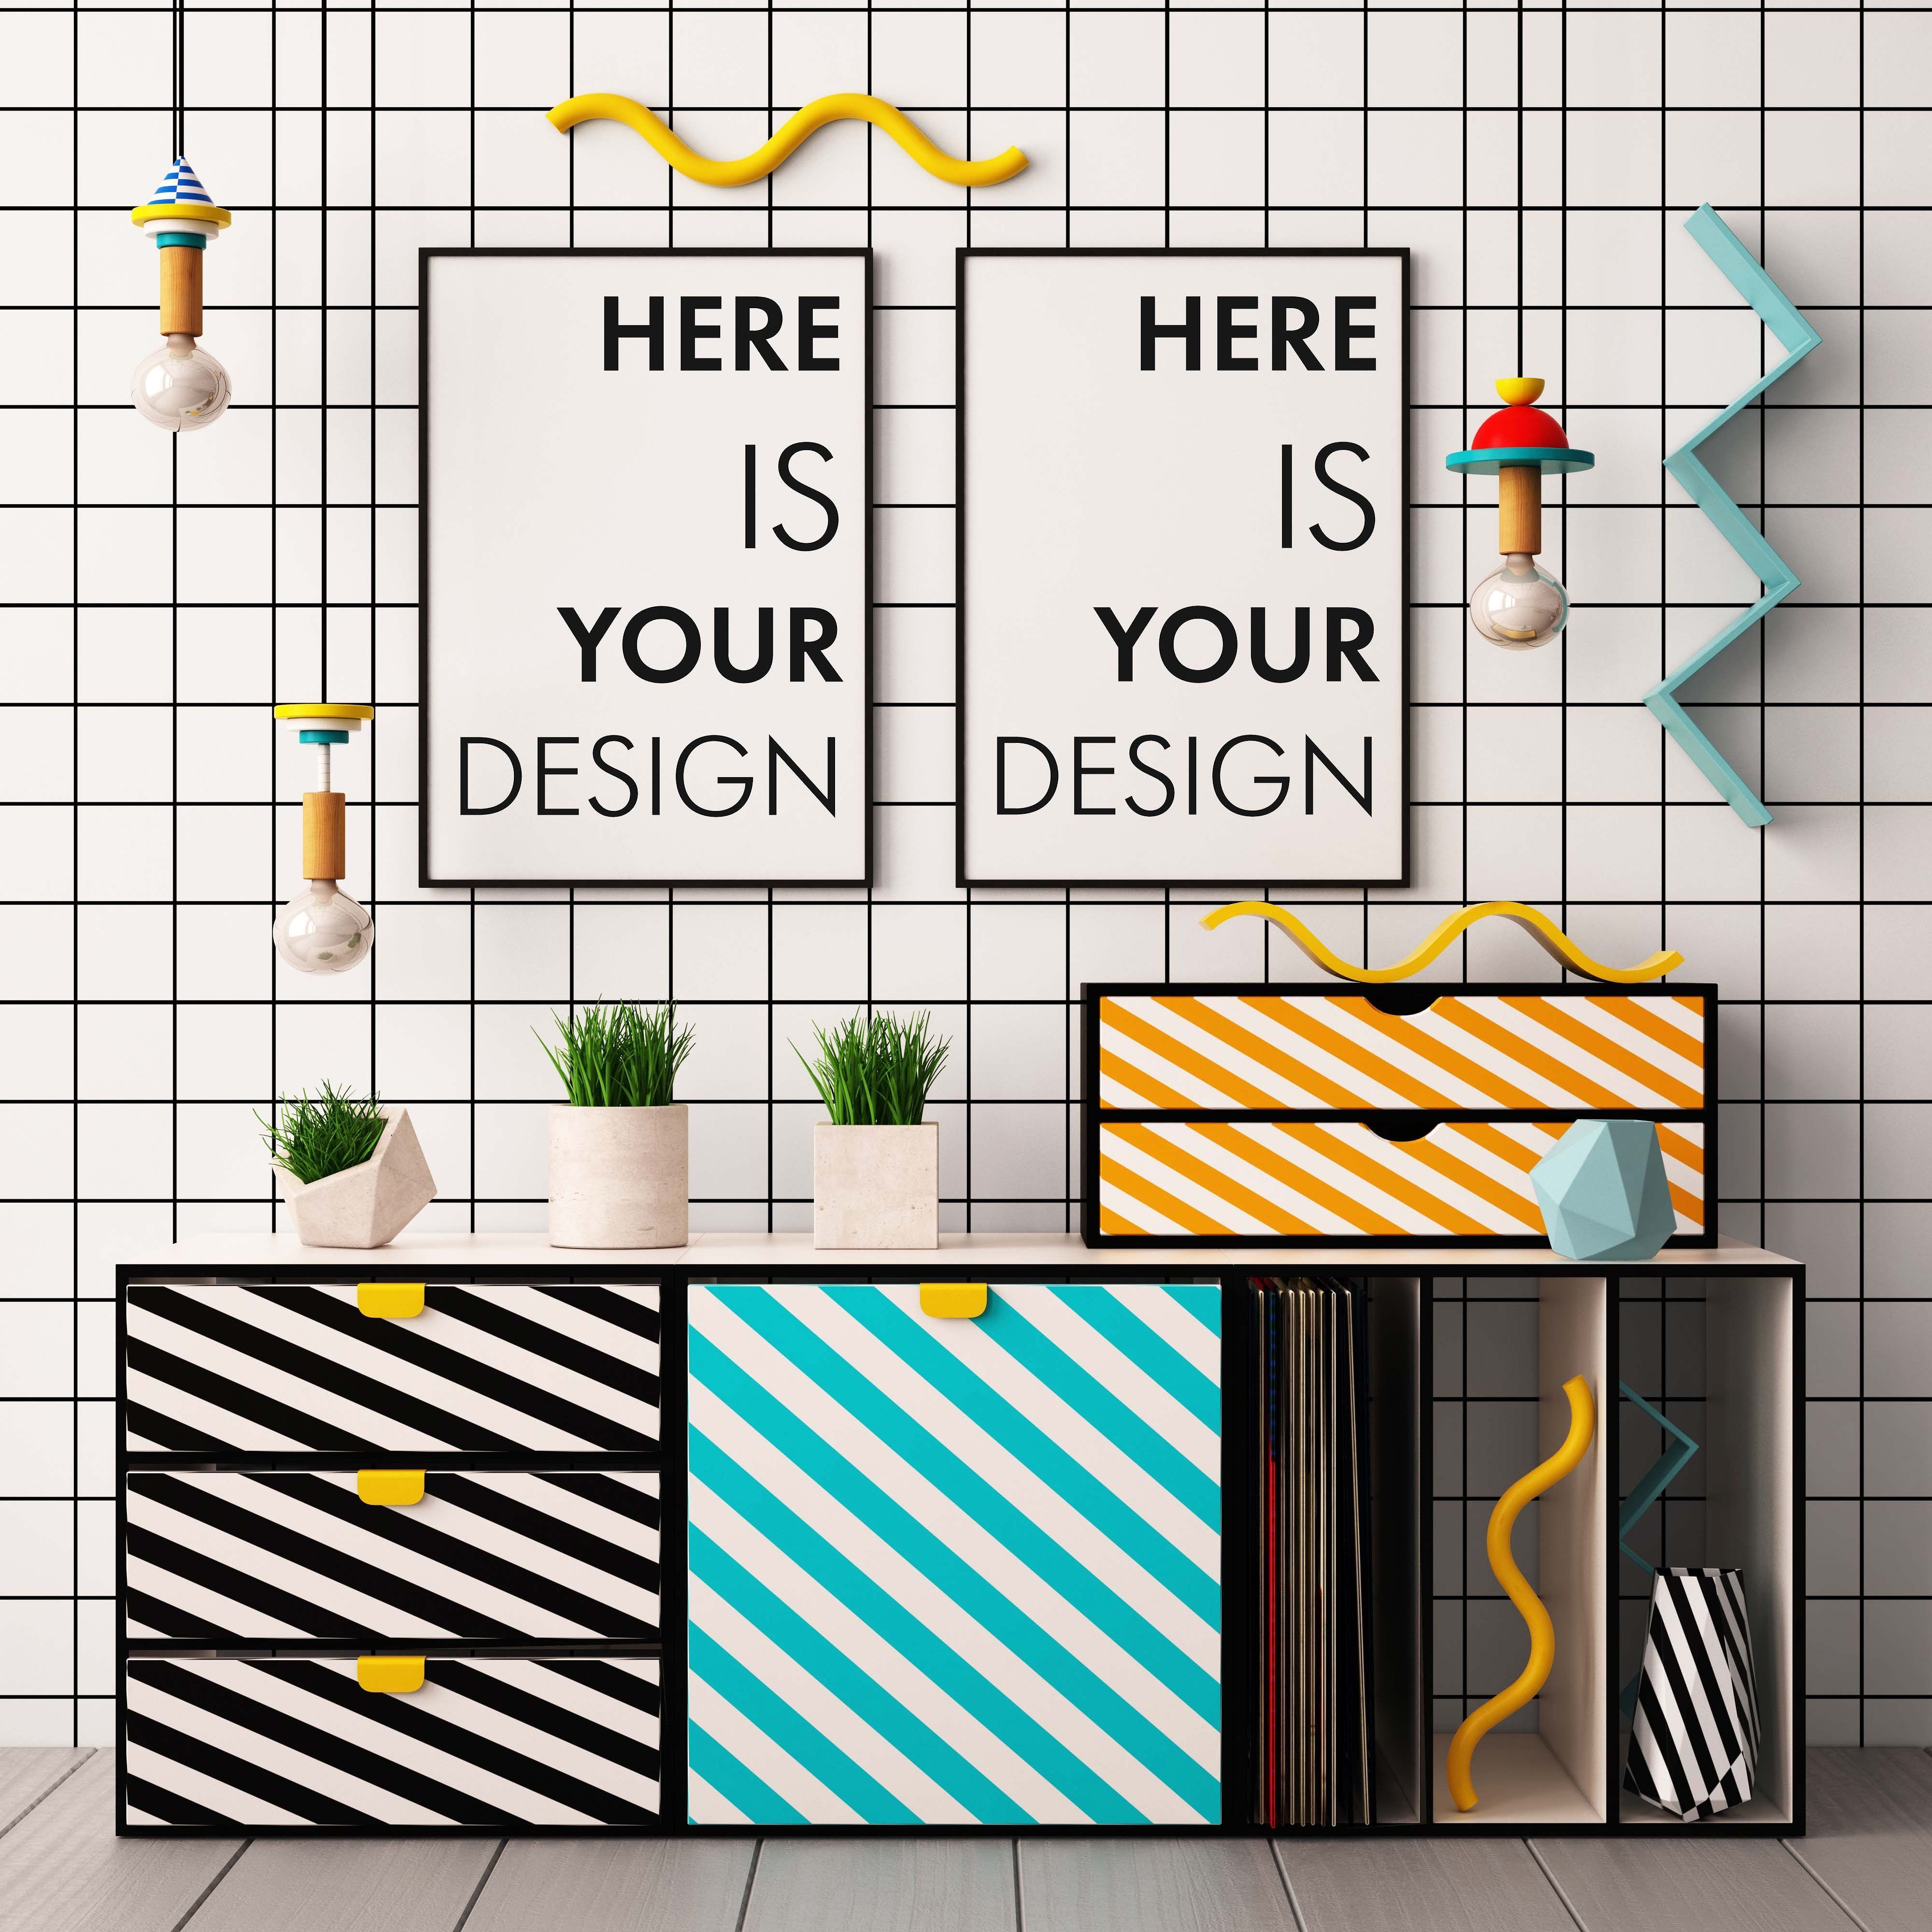 What is happy design? The new summer 2018 Trend #memphisdesign